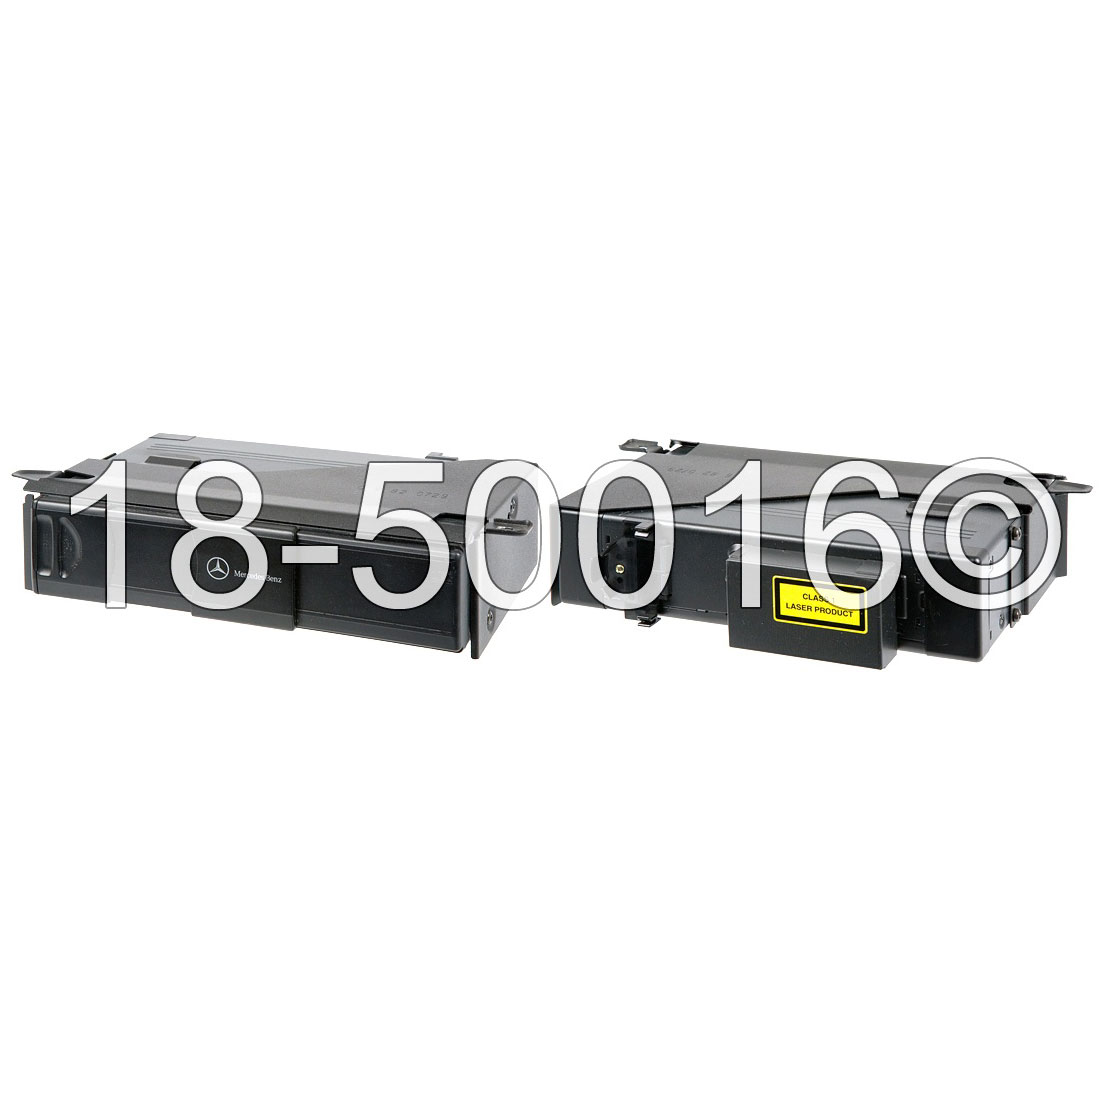 Mercedes_Benz ML320                          CD or DVD ChangerCD or DVD Changer